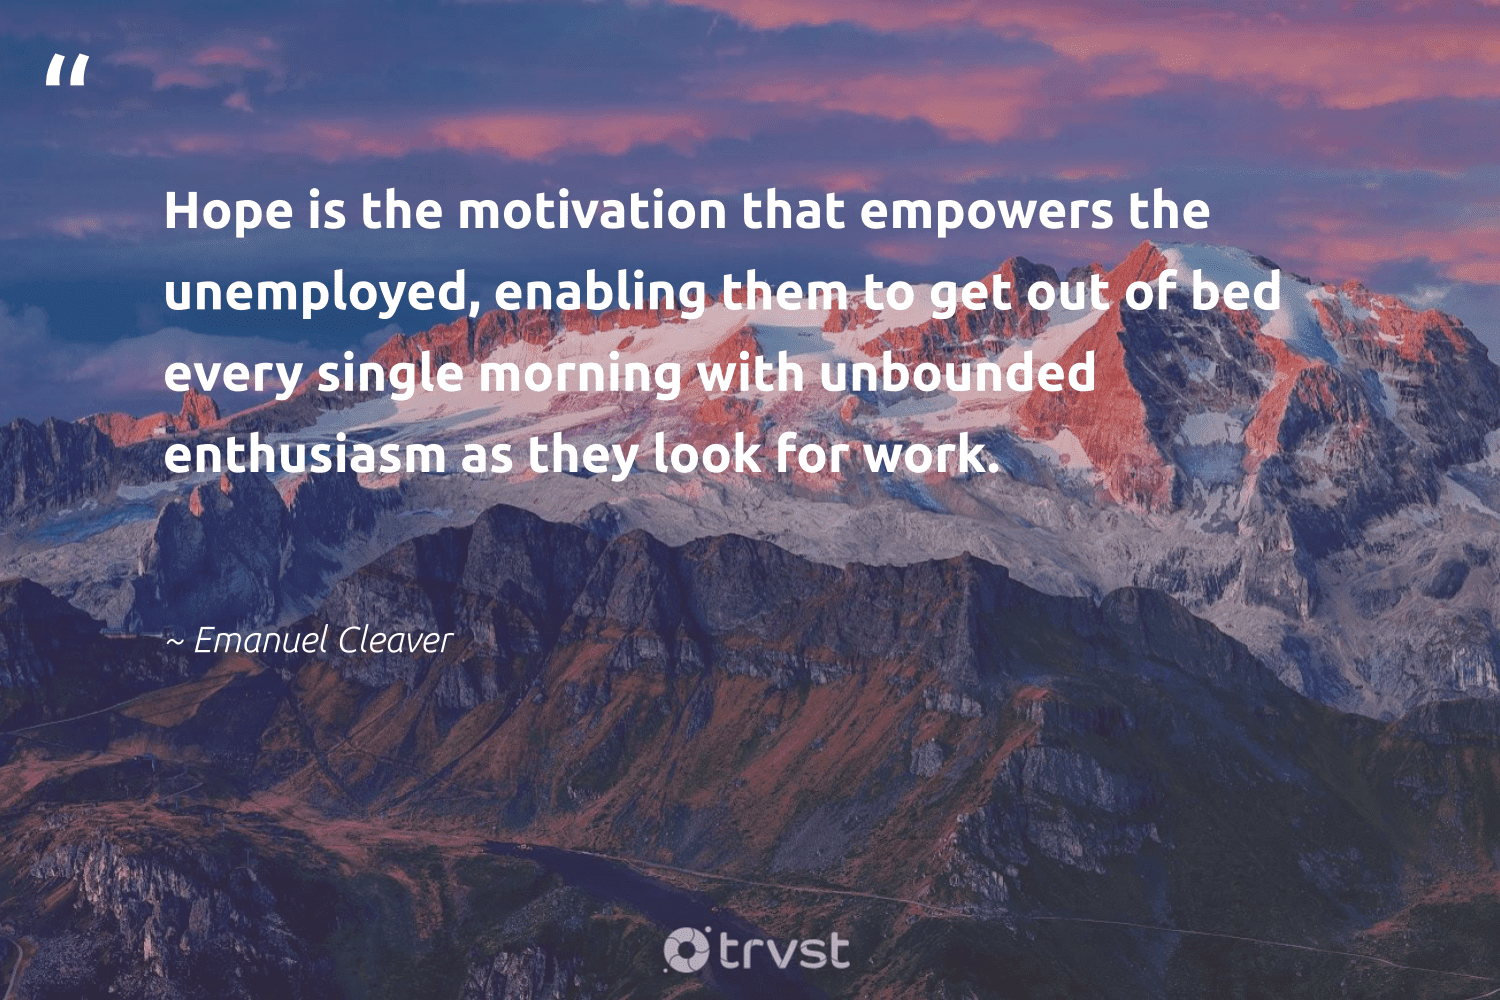 """""""Hope is the motivation that empowers the unemployed, enabling them to get out of bed every single morning with unbounded enthusiasm as they look for work.""""  - Emanuel Cleaver #trvst #quotes #hope #motivation #positivity #keepitup #nevergiveup #collectiveaction #goals #domore #begreat #dosomething"""